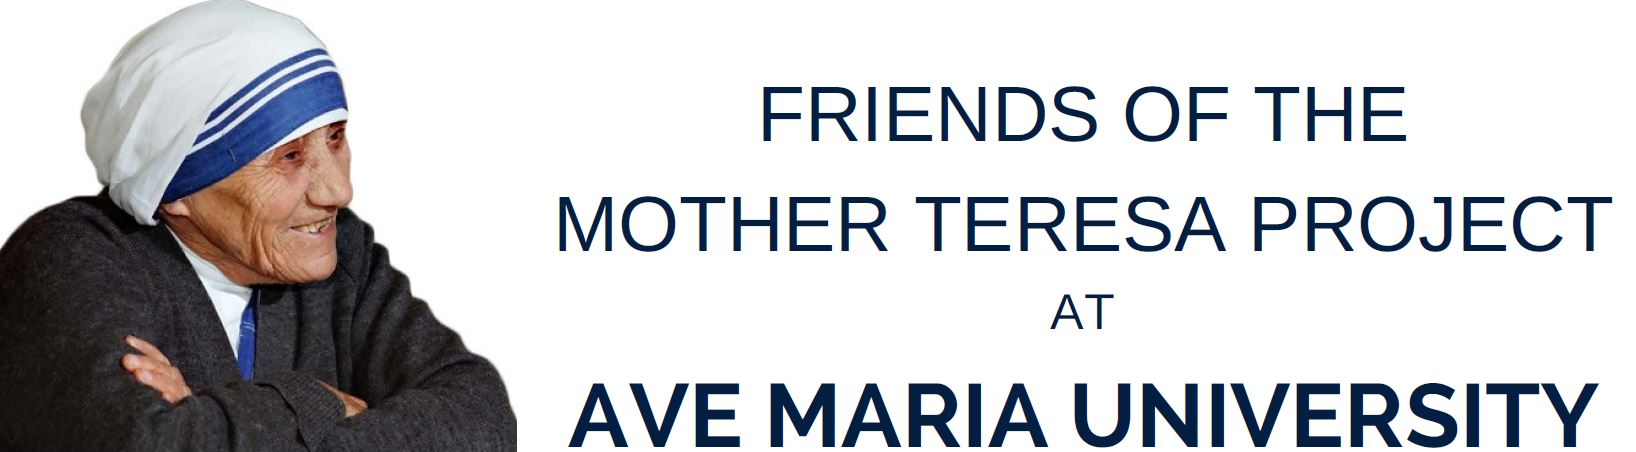 Friends of Mother Teresa Project logo